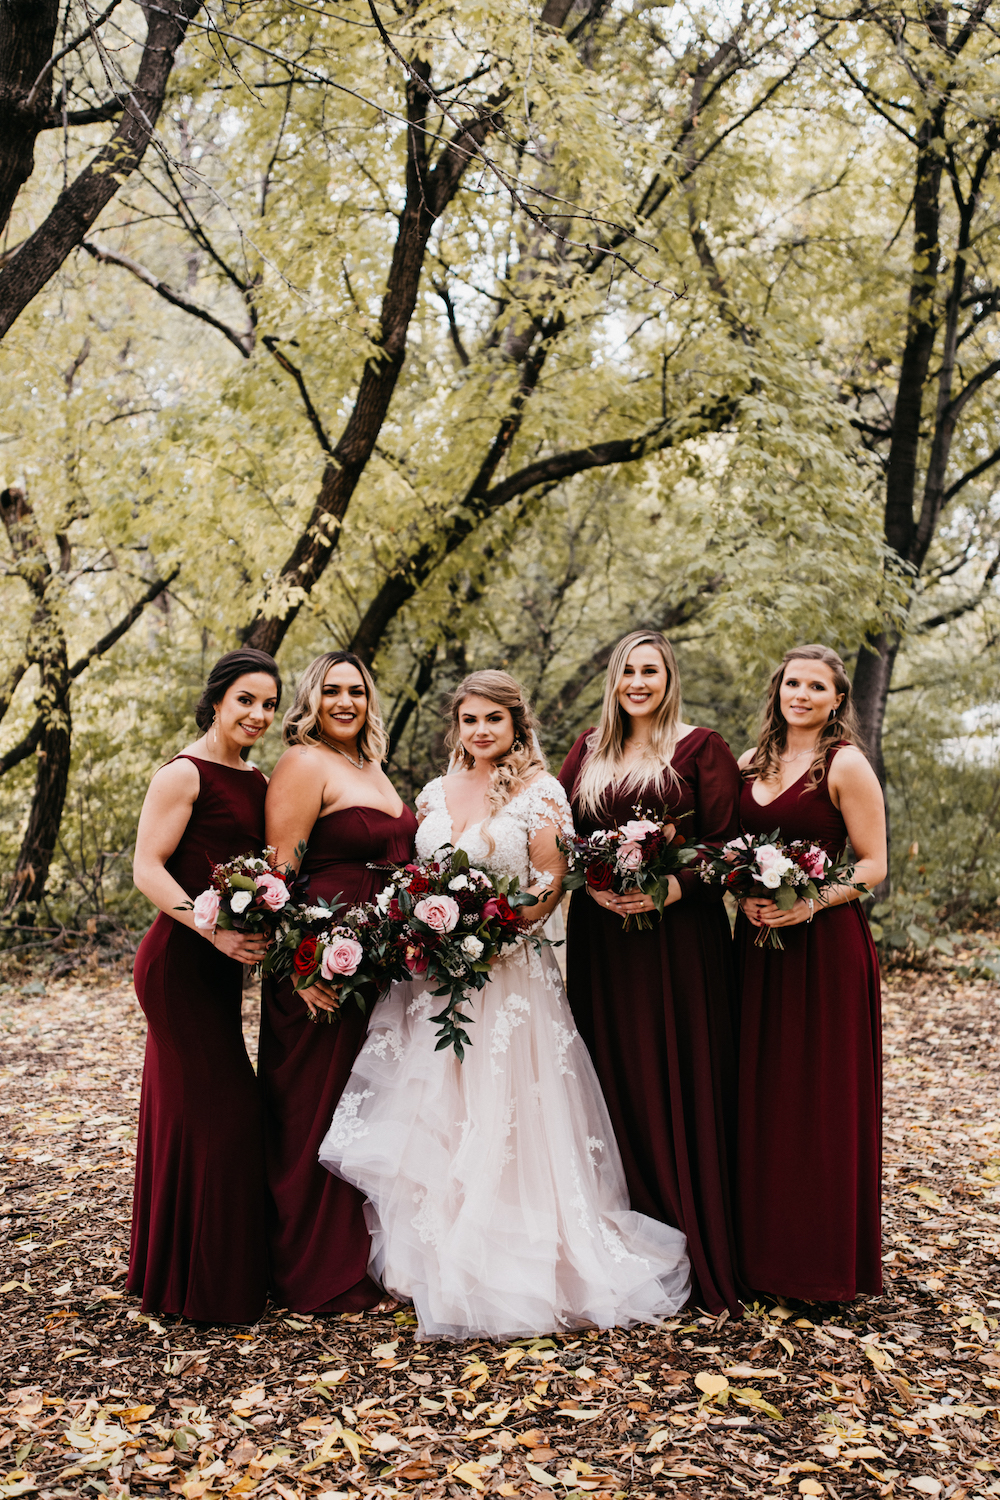 Wine Inspired Fall Wedding at Hawthorn Estates - Winnipeg Wedding Florist